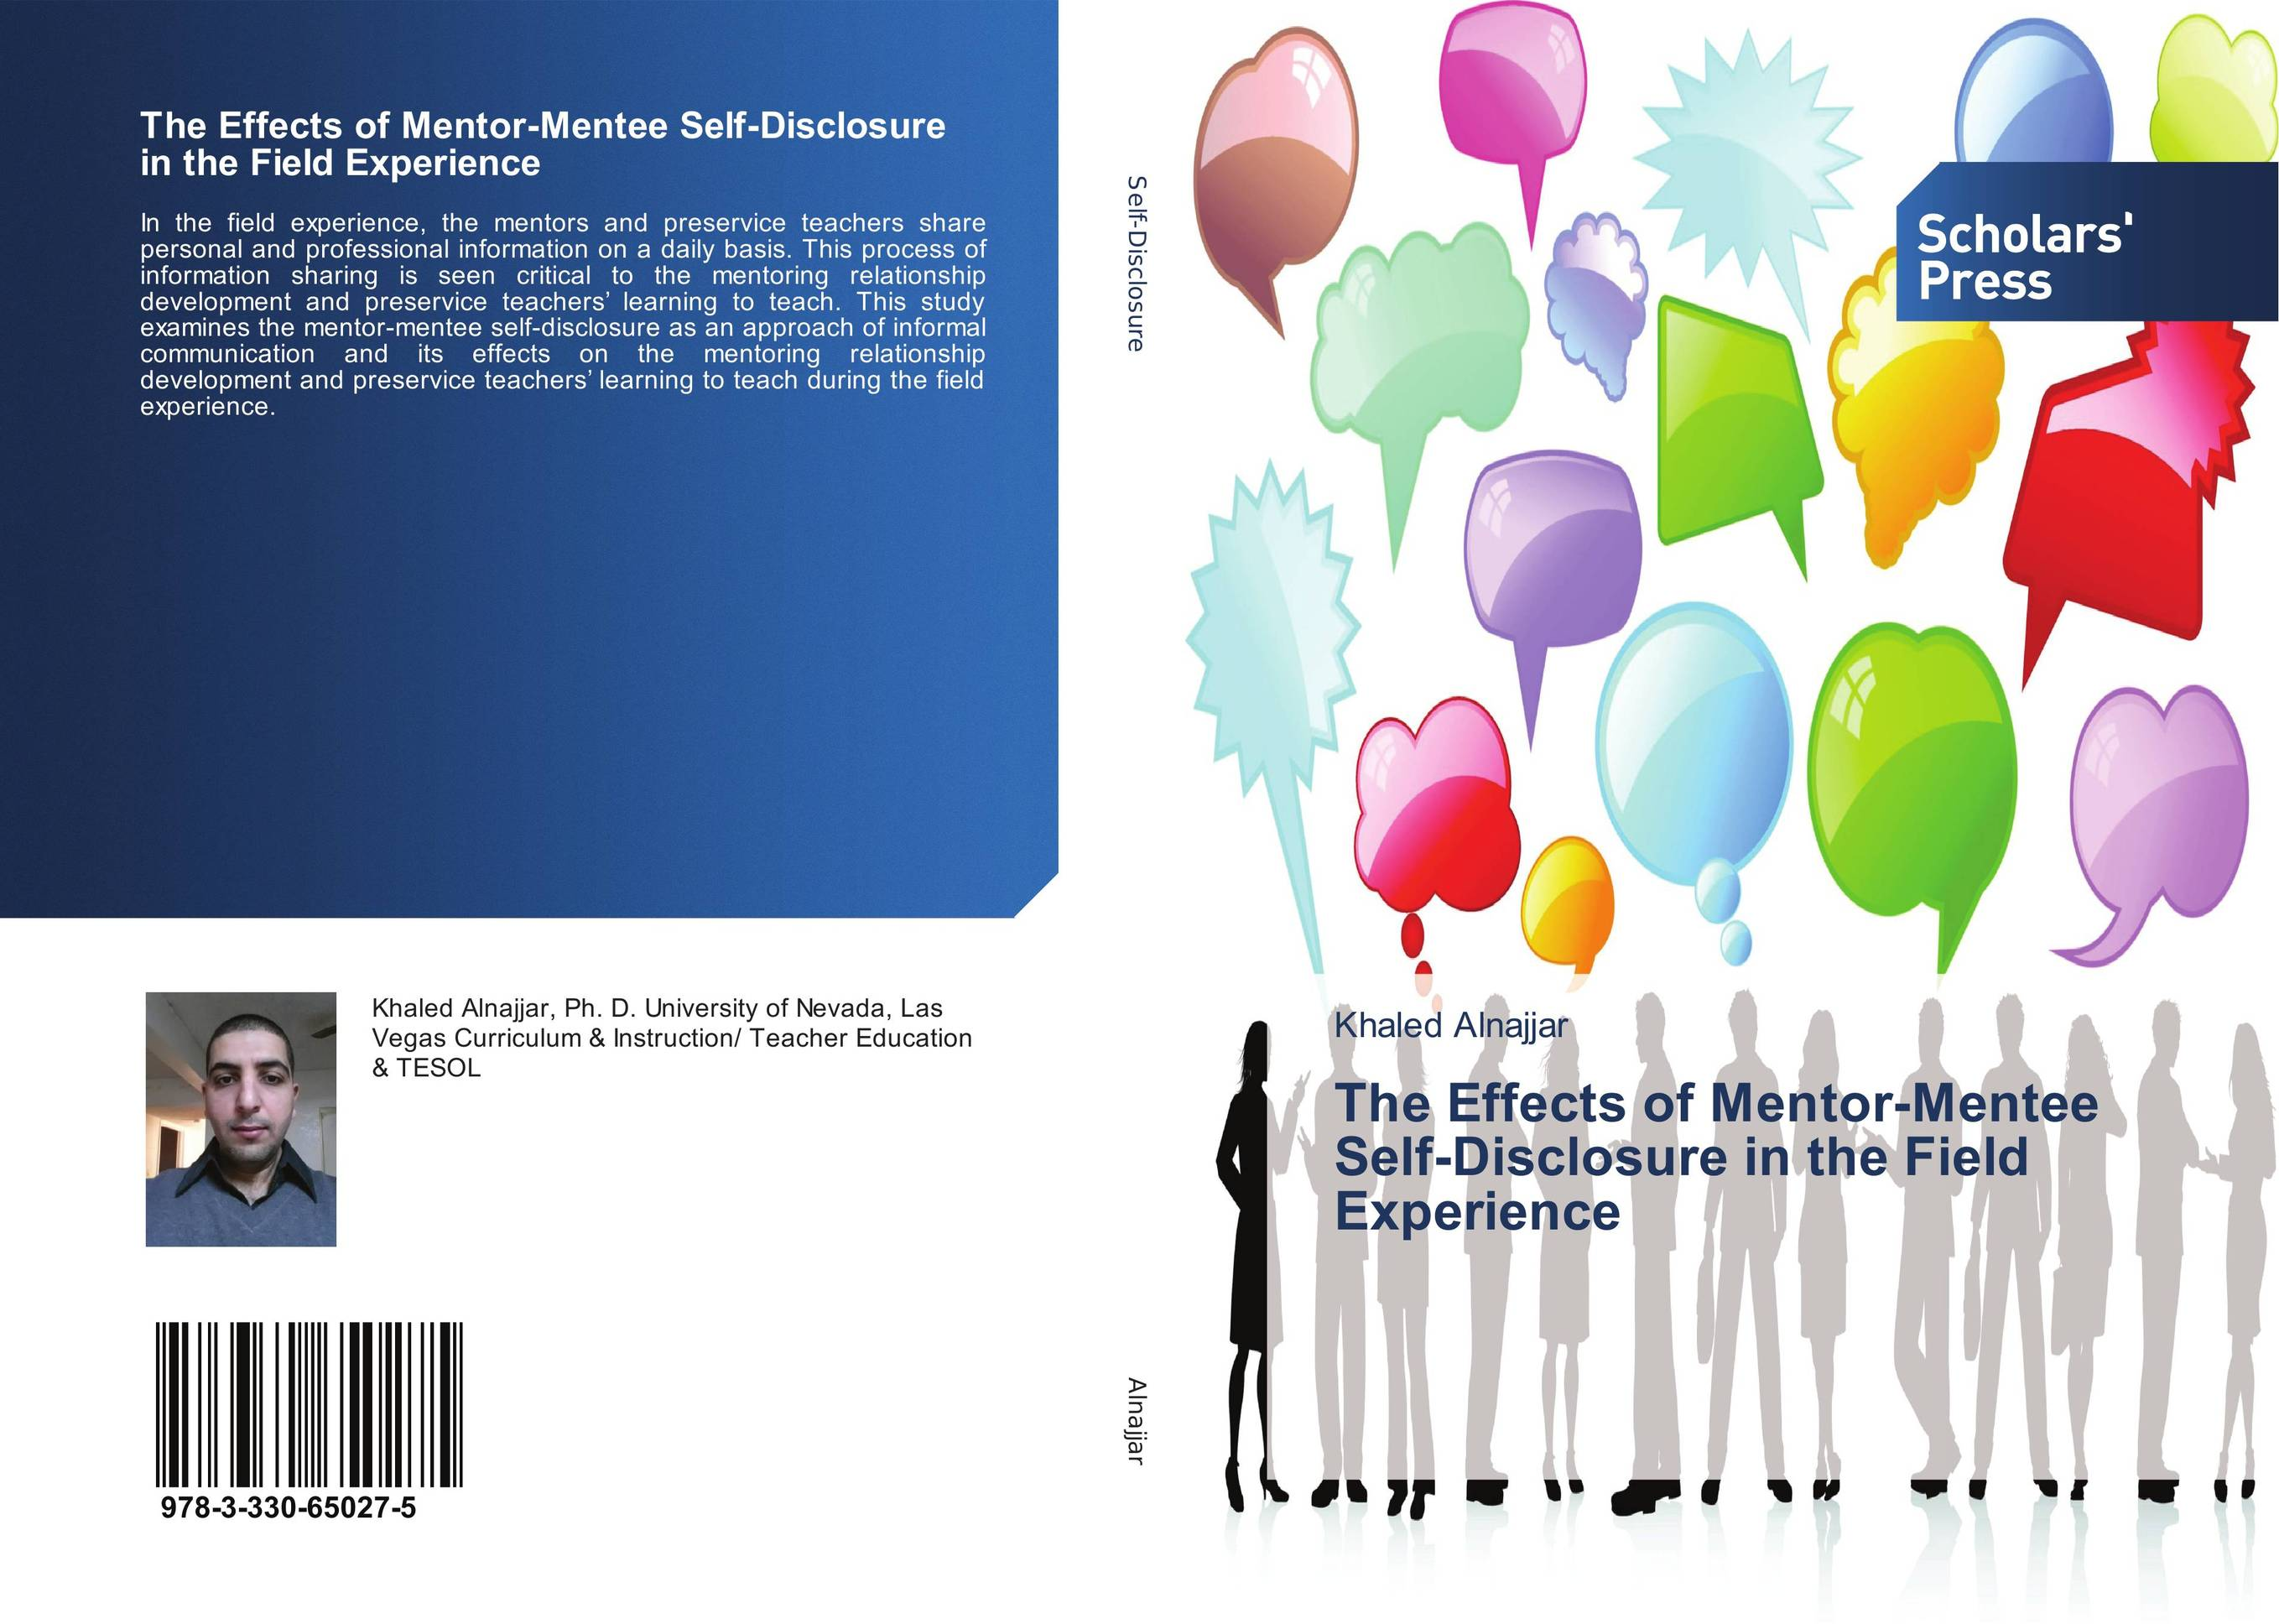 9783330650275 The Effects of MentorMentee SelfDisclosure in thld Experience